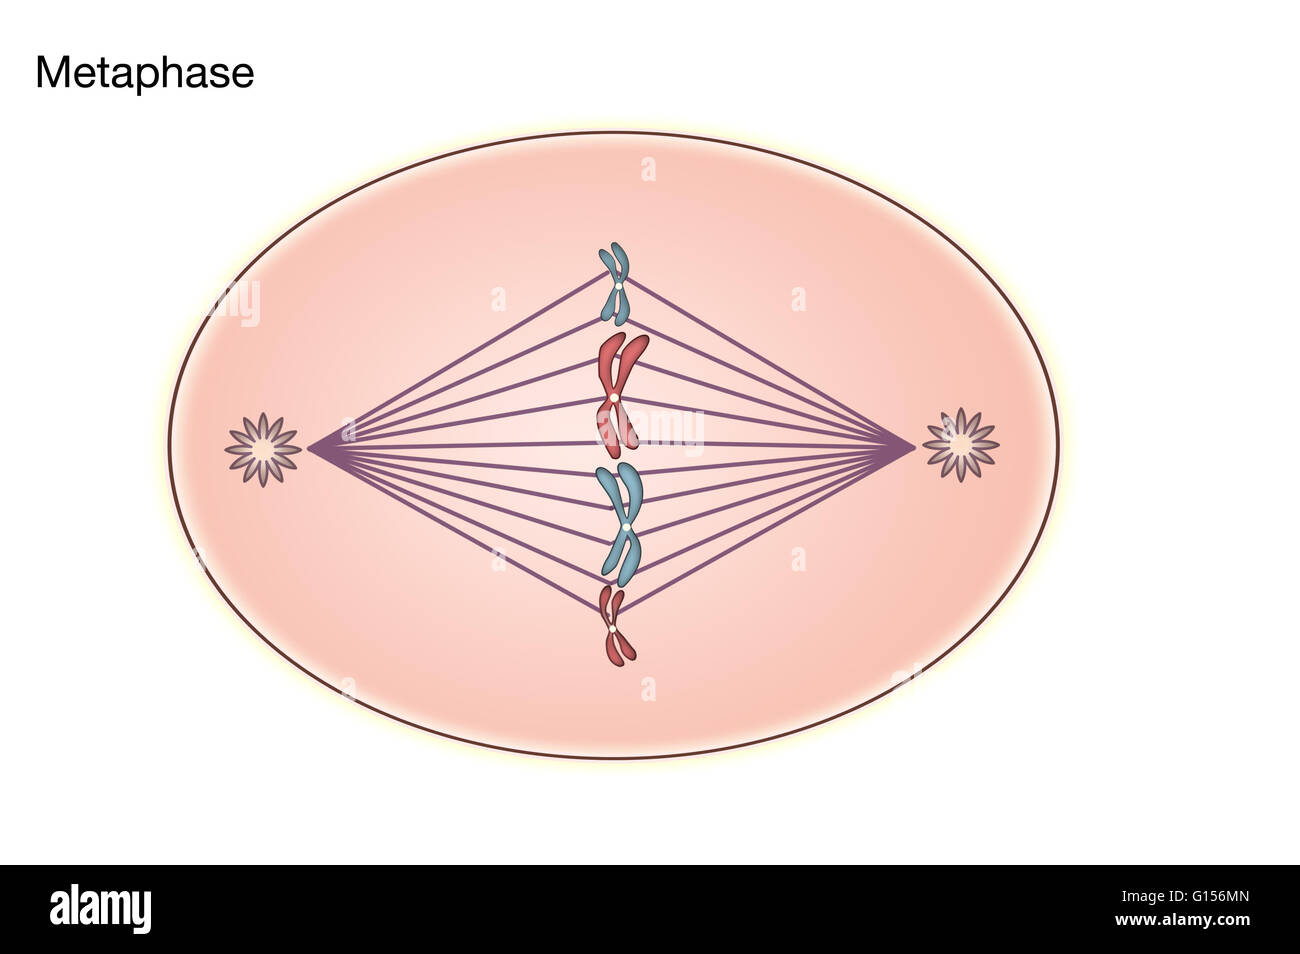 diagram of metaphase of mitosis in an animal cell stock